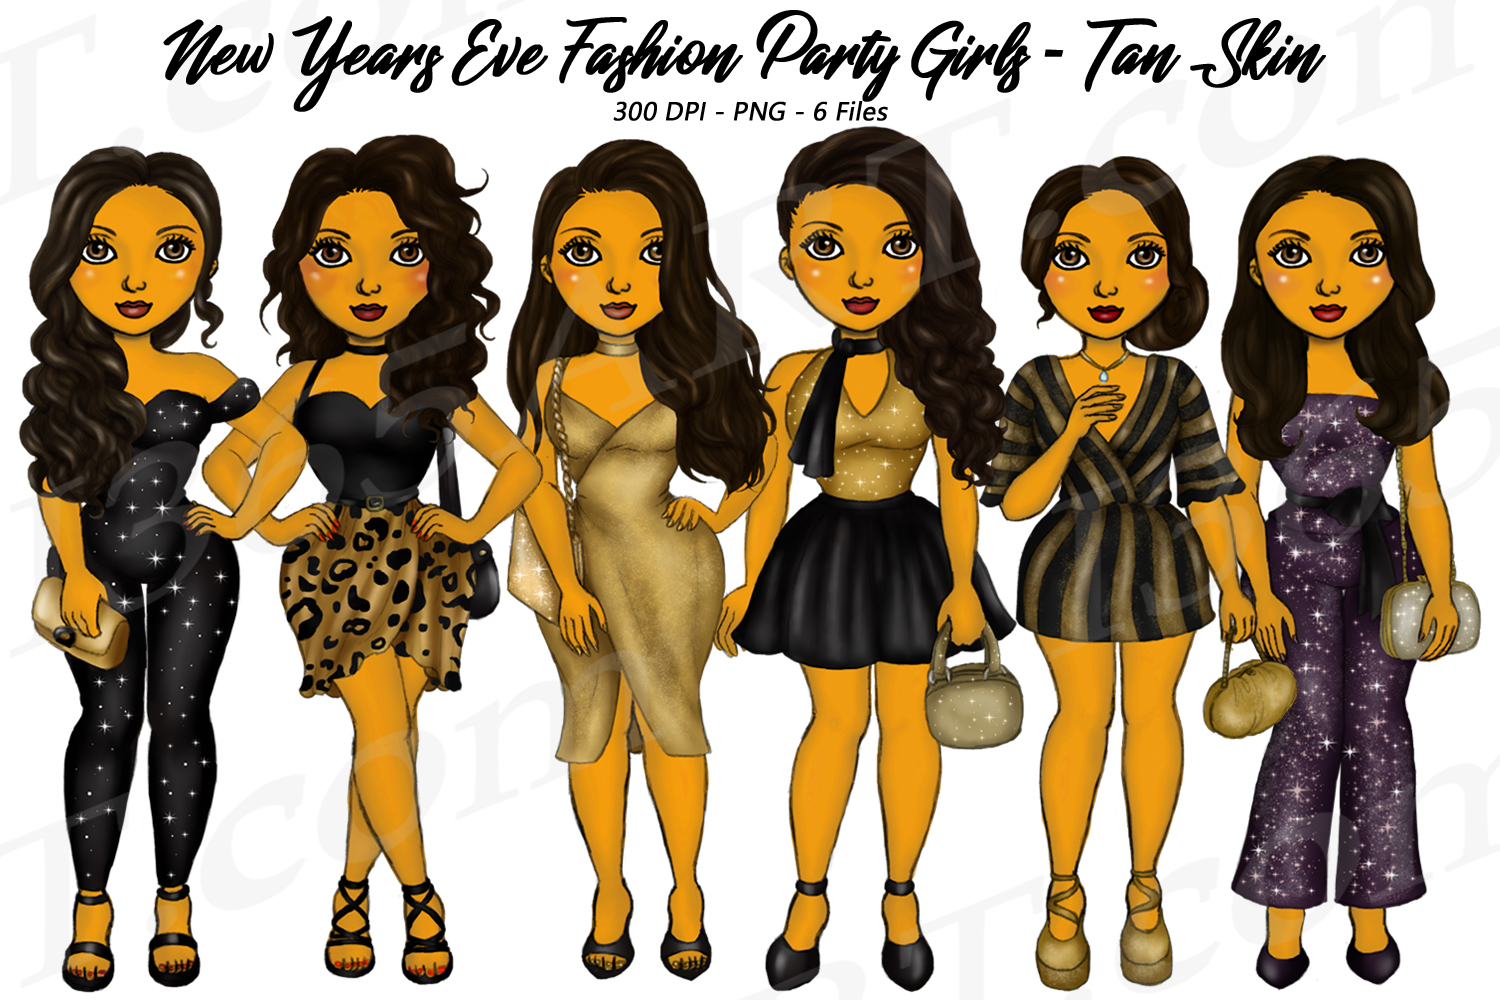 New Years Eve Party Brown Skin Tan Girls Fashion Clipart example image 1